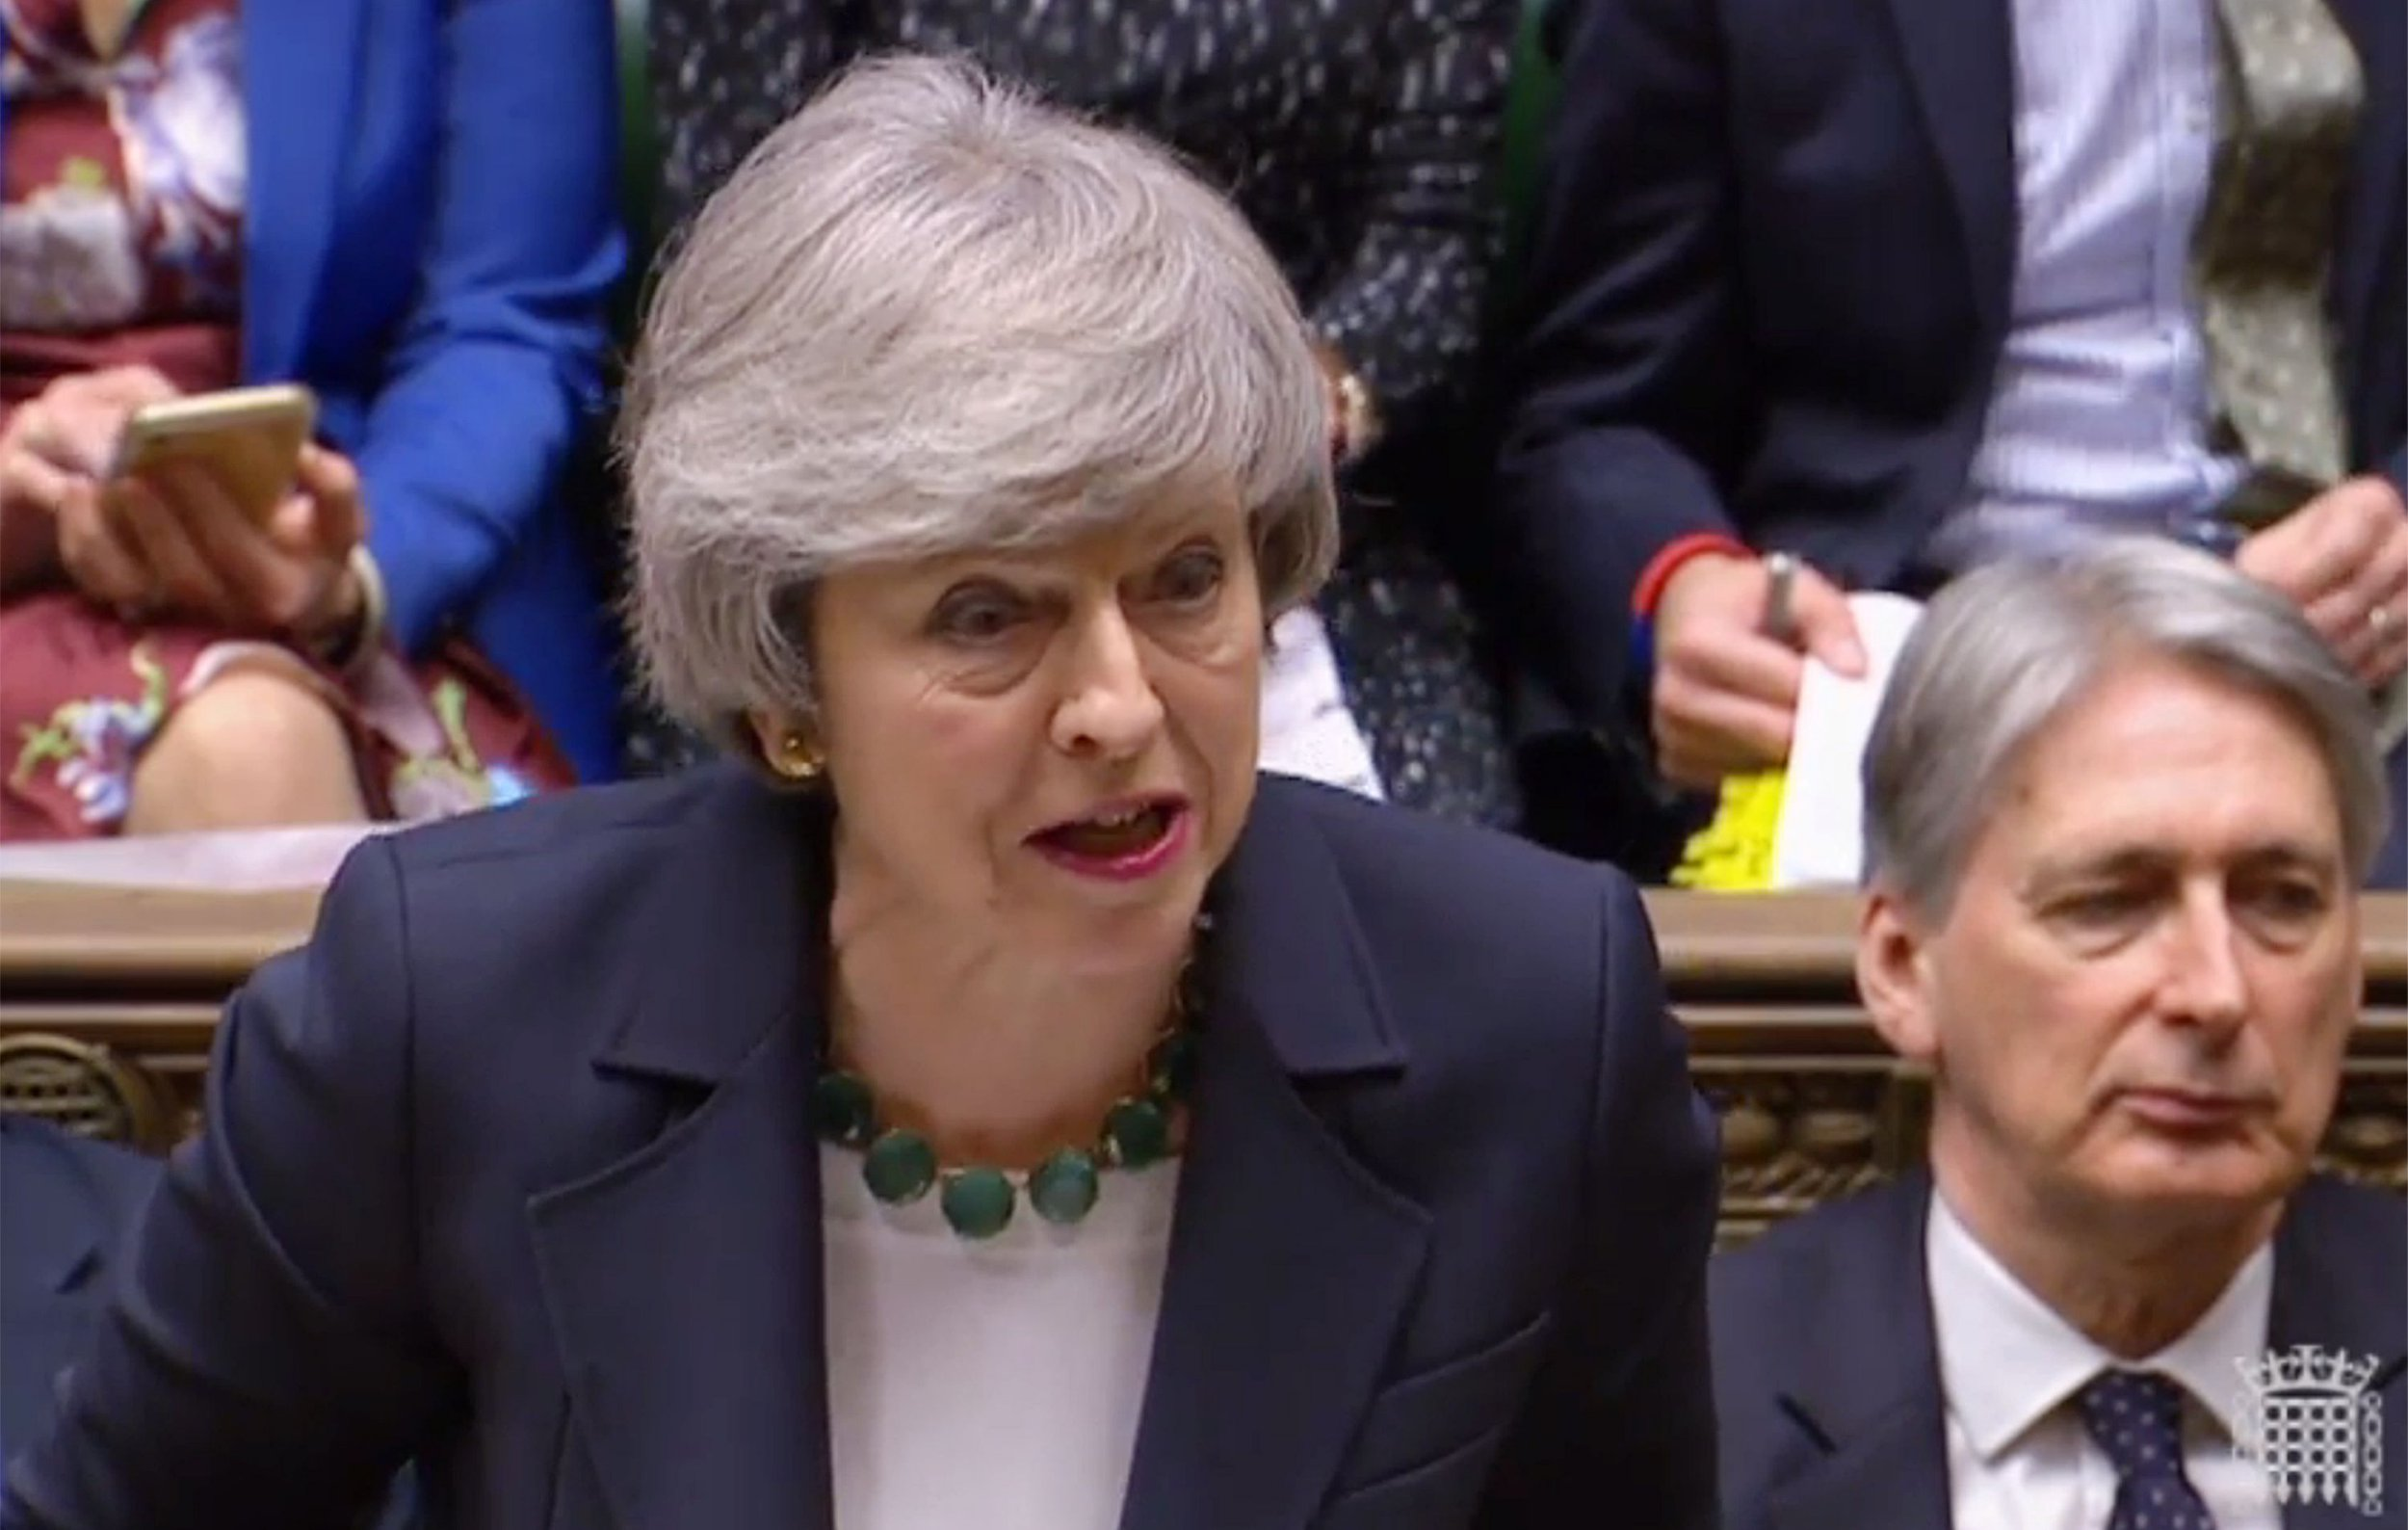 "A video grab from footage broadcast by the UK Parliament's Parliamentary Recording Unit (PRU) shows Britain's Prime Minister Theresa May as she speaks during the weekly Prime Minister's Questions (PMQs) in the House of Commons in London on February 13, 2019. - The British government denied Wednesday it was secretly plotting to bounce MPs into a last-minute choice just days before Brexit between a rejigged deal or a lengthy delay. ITV television reported that it had overheard Prime Minister Theresa May's chief Brexit negotiator Olly Robbins in a Brussels bar saying the European Union would probably let Britain extend its March 29 departure date. (Photo by - / AFP) / RESTRICTED TO EDITORIAL USE - MANDATORY CREDIT "" AFP PHOTO / PRU "" - NO USE FOR ENTERTAINMENT, SATIRICAL, MARKETING OR ADVERTISING CAMPAIGNS-/AFP/Getty Images"